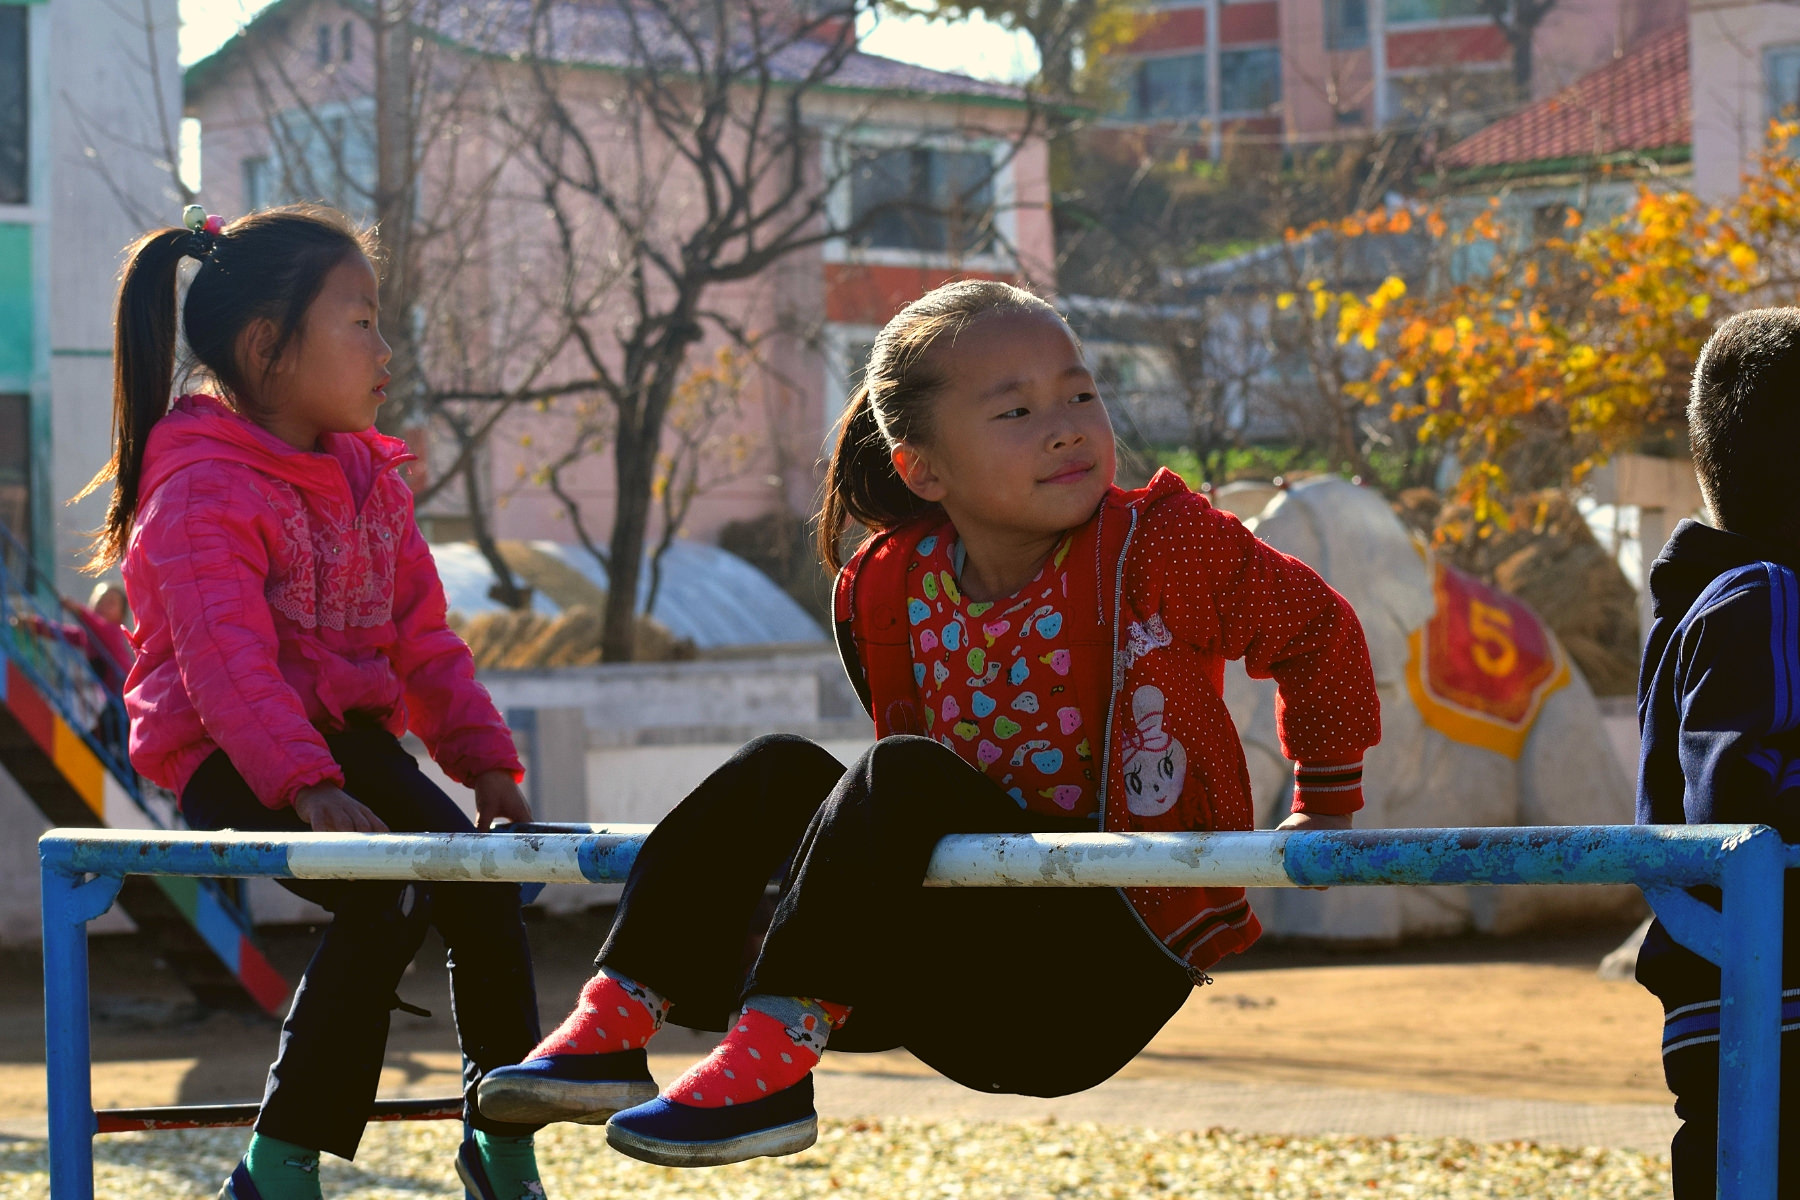 Kindergarten in a cooperative farm in North Korea. Visit arranged by KTG. We arrange trips for people who would like to donate goods to farms and orphanages in North Korea (DPRK)